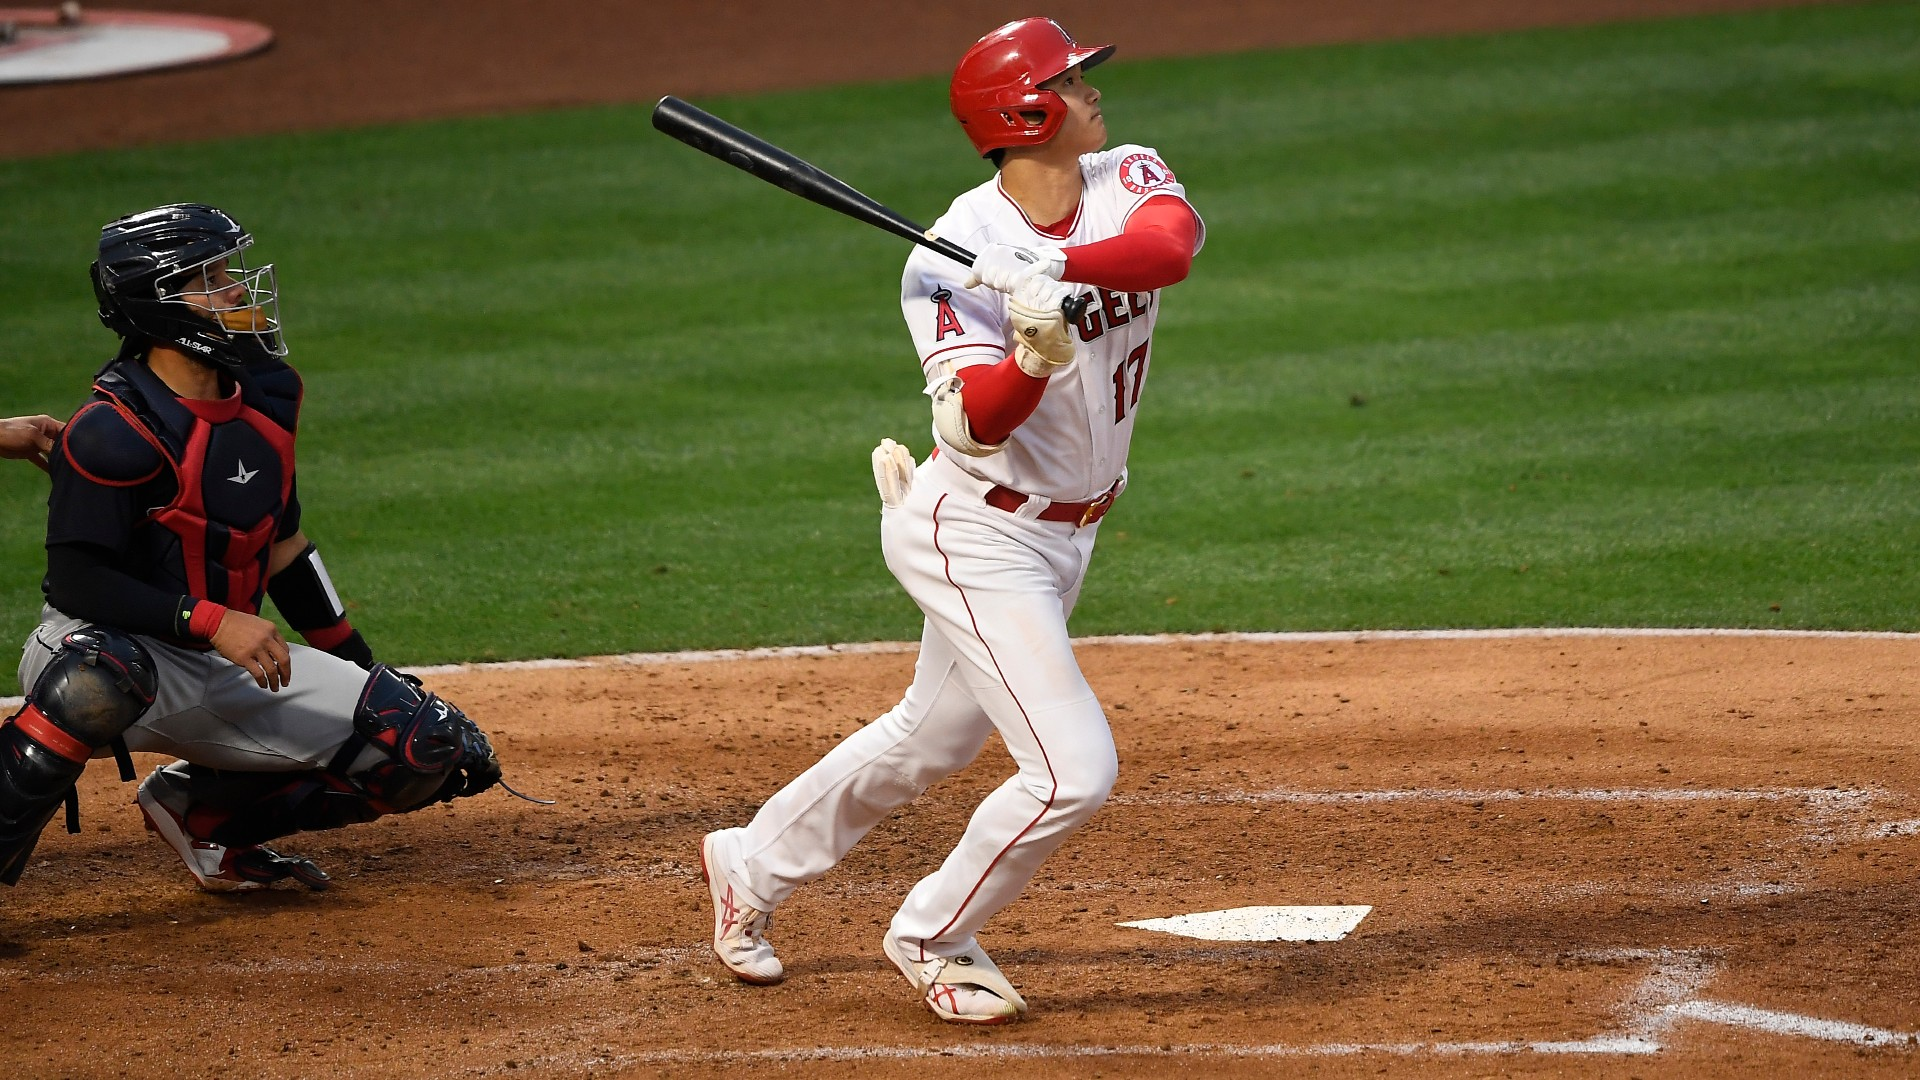 Angels' Shohei Ohtani will make history with his participation in 2021 Home Run Derby